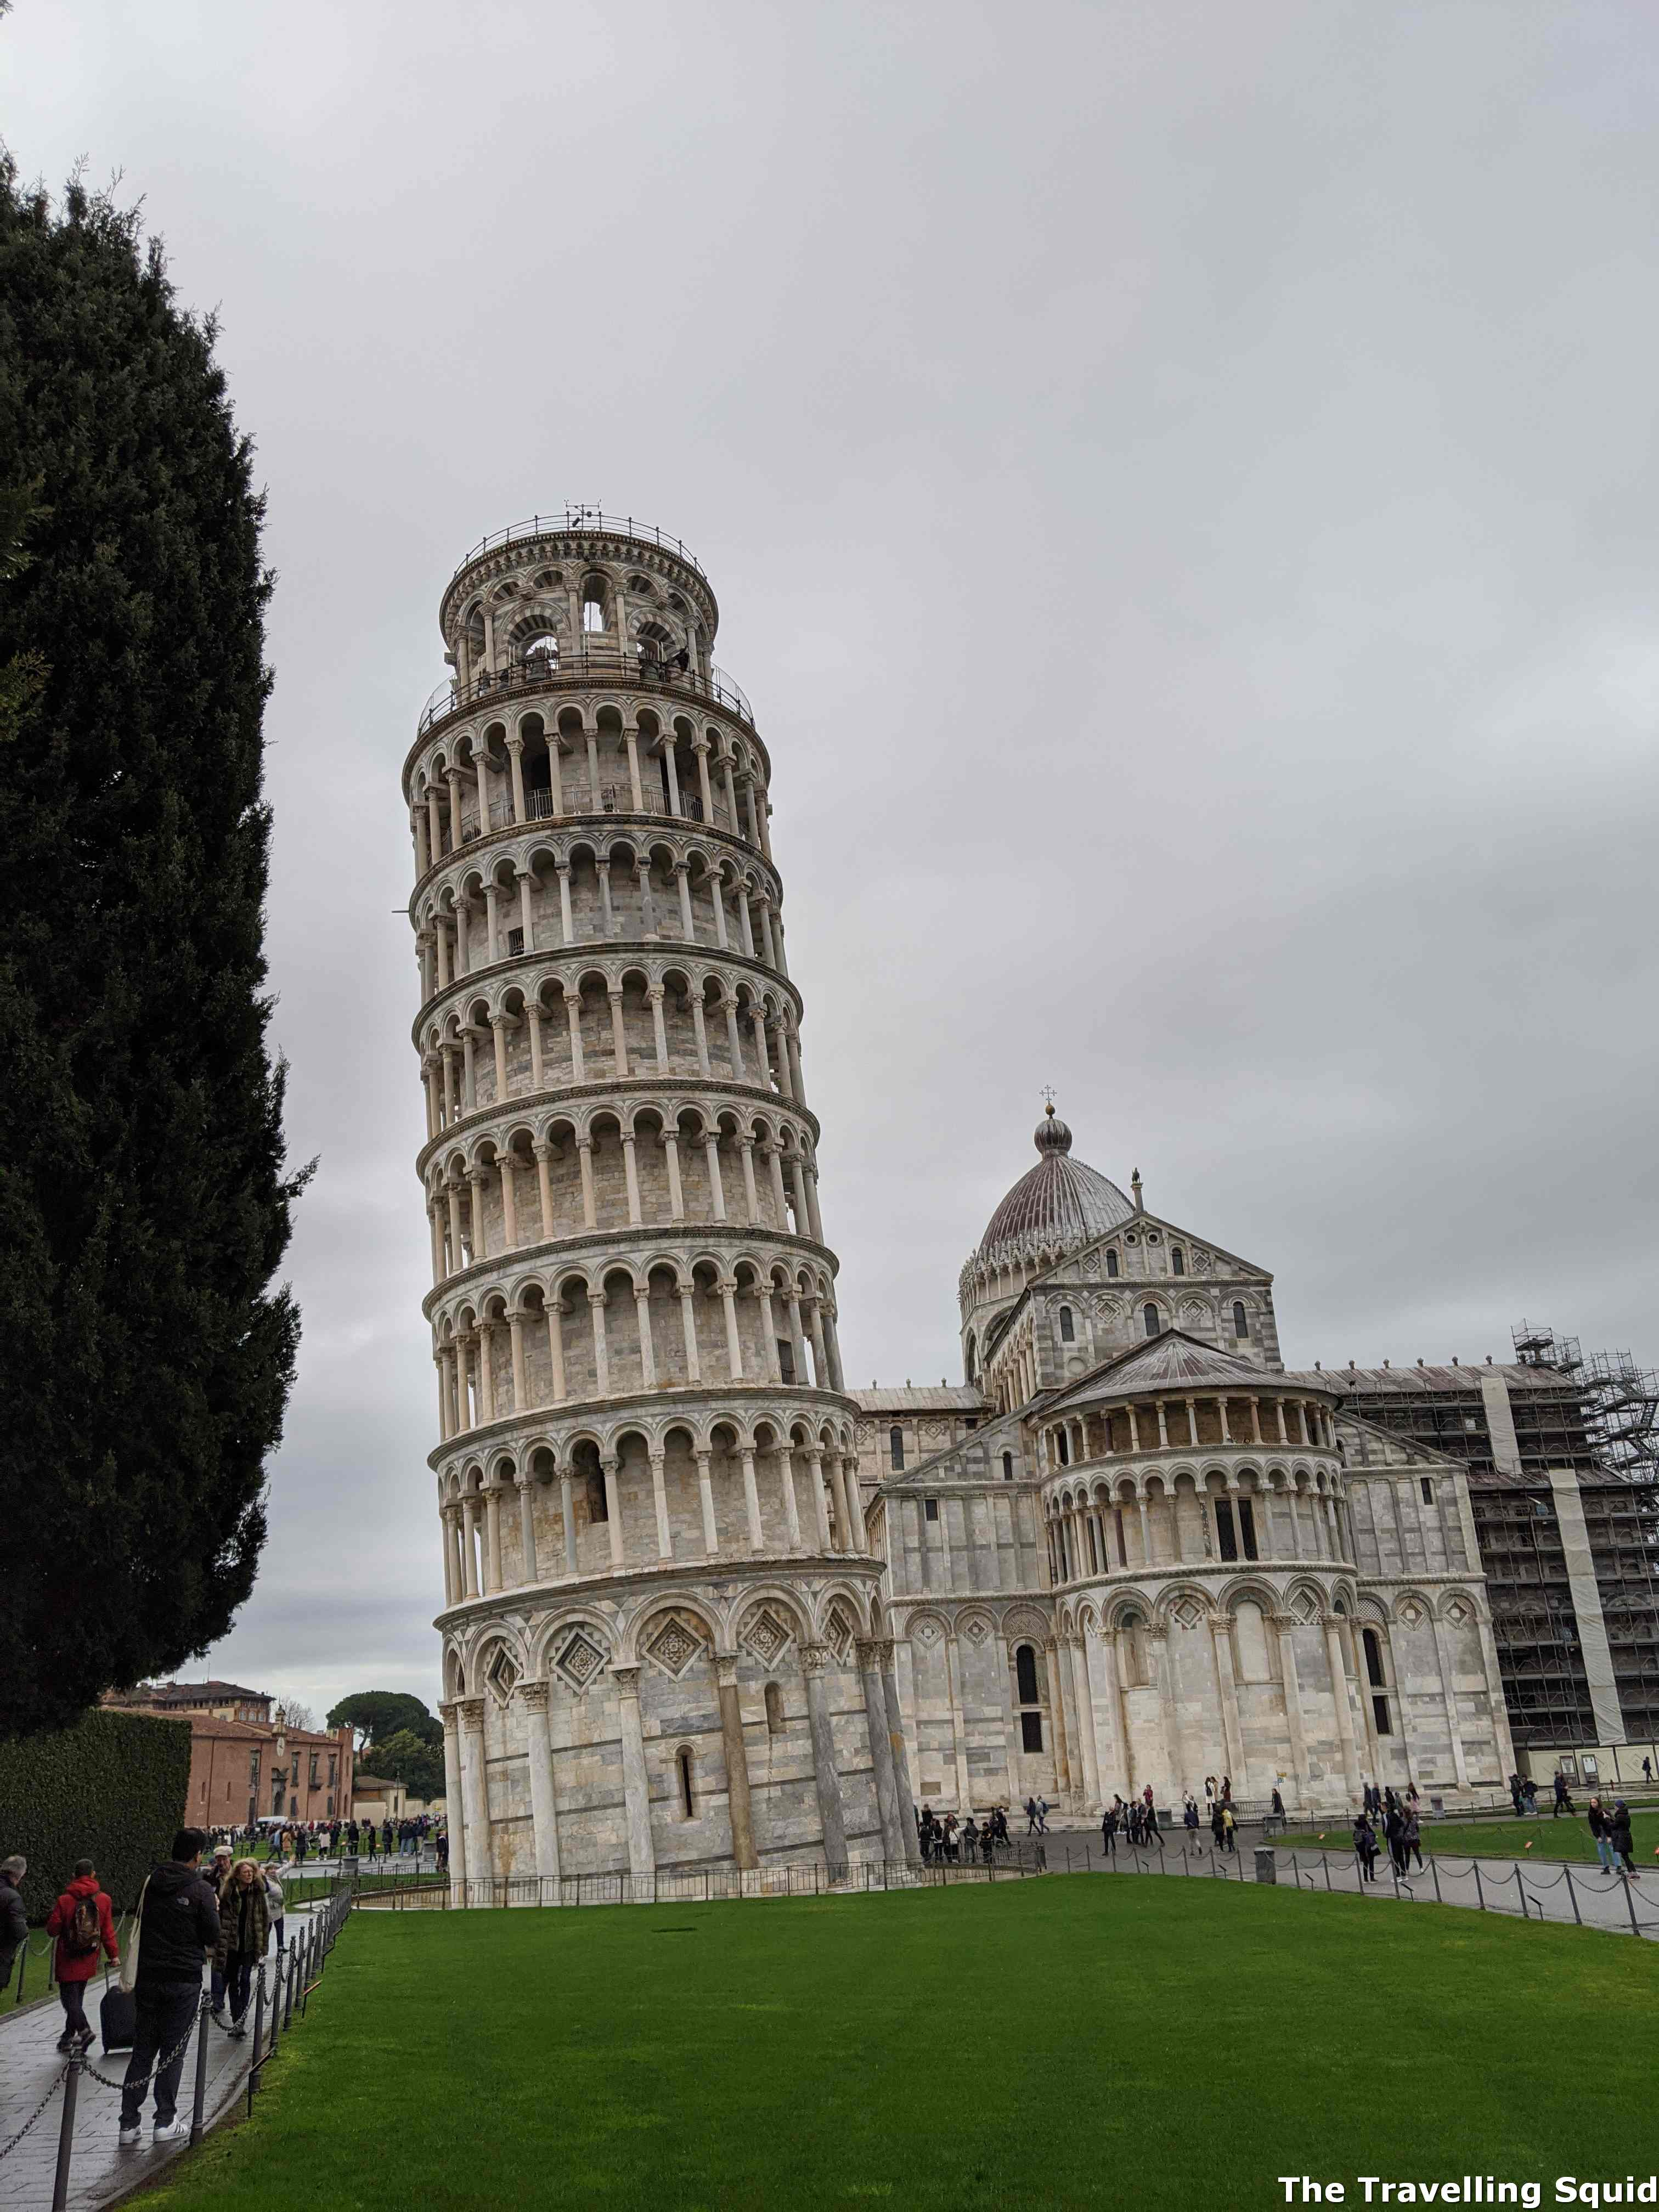 paying to climb up the Leaning Tower of Pisa